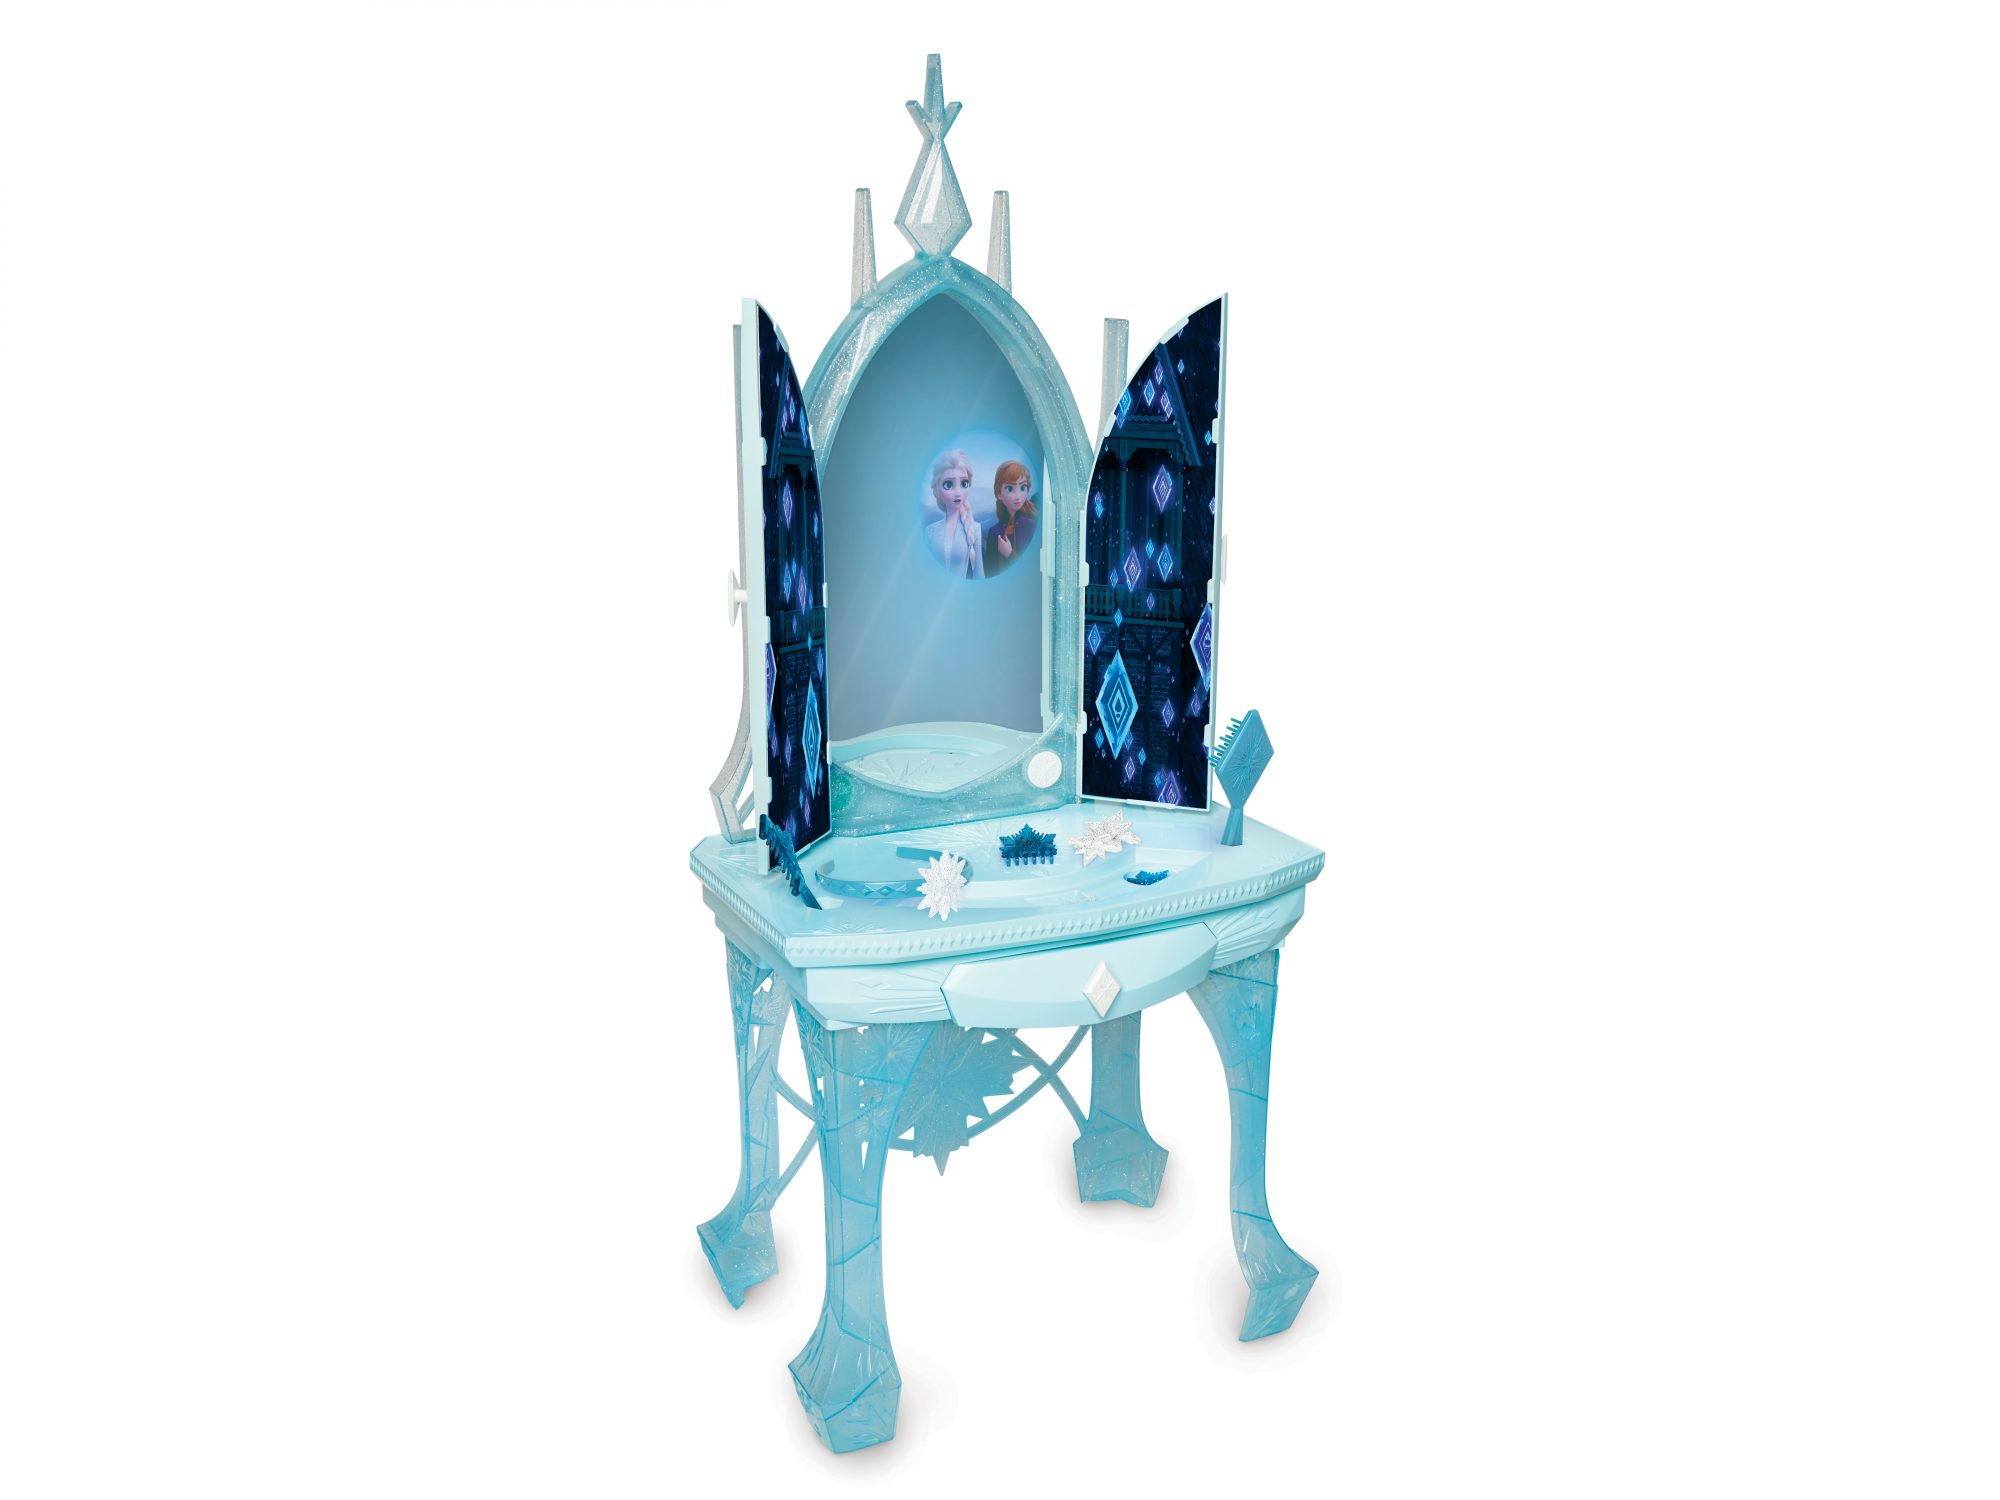 Disney Frozen 2 Elsa's Enchanted Ice Interactive Feature Vanity